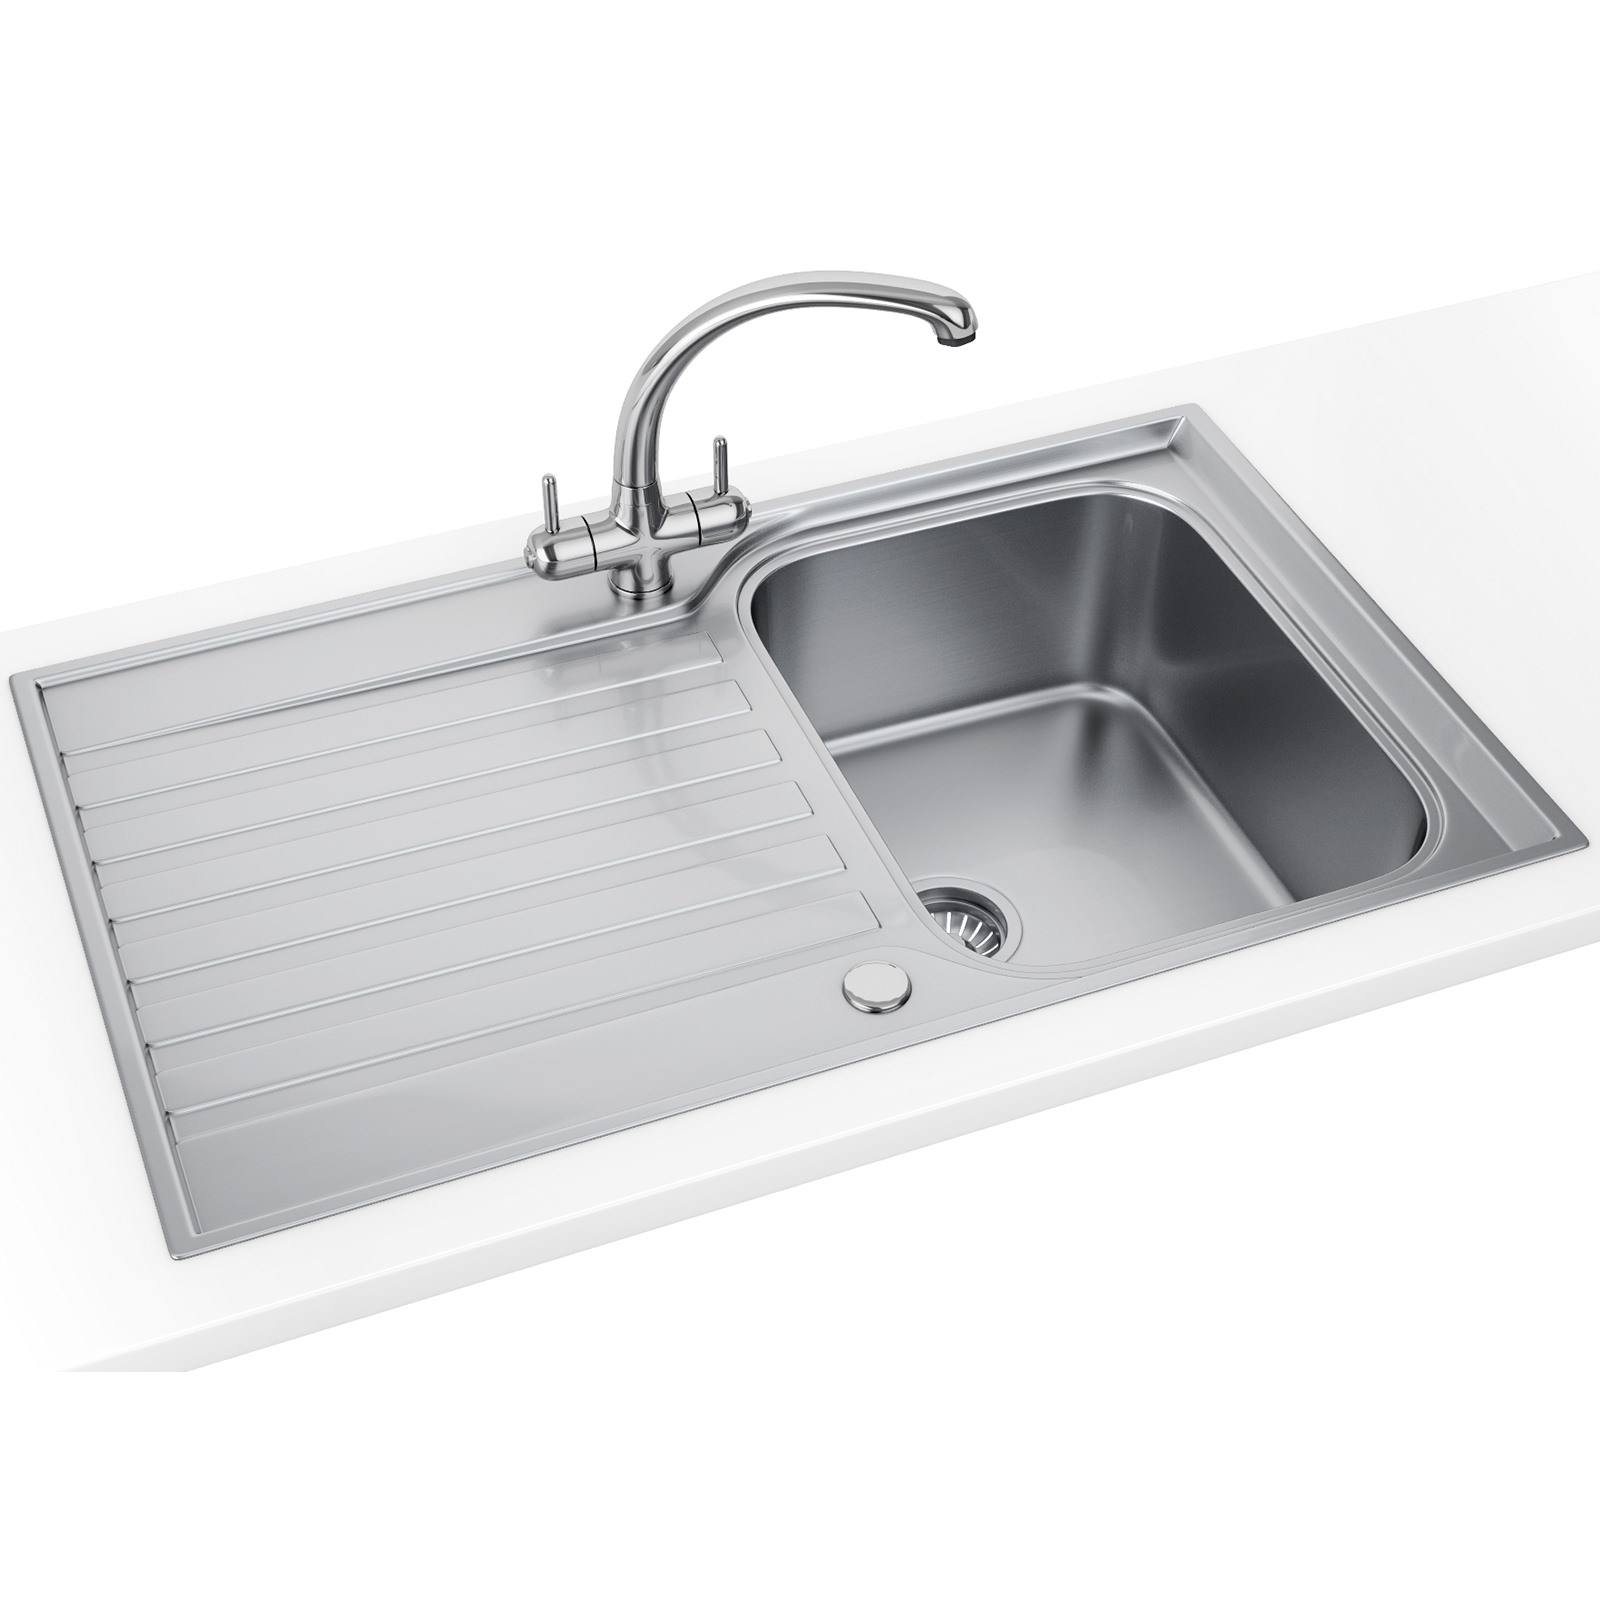 Franke Sink And Tap Packages : Franke Ascona ASX 611-860 Stainless Steel 1.0 Bowl Inset Sink 101 ...